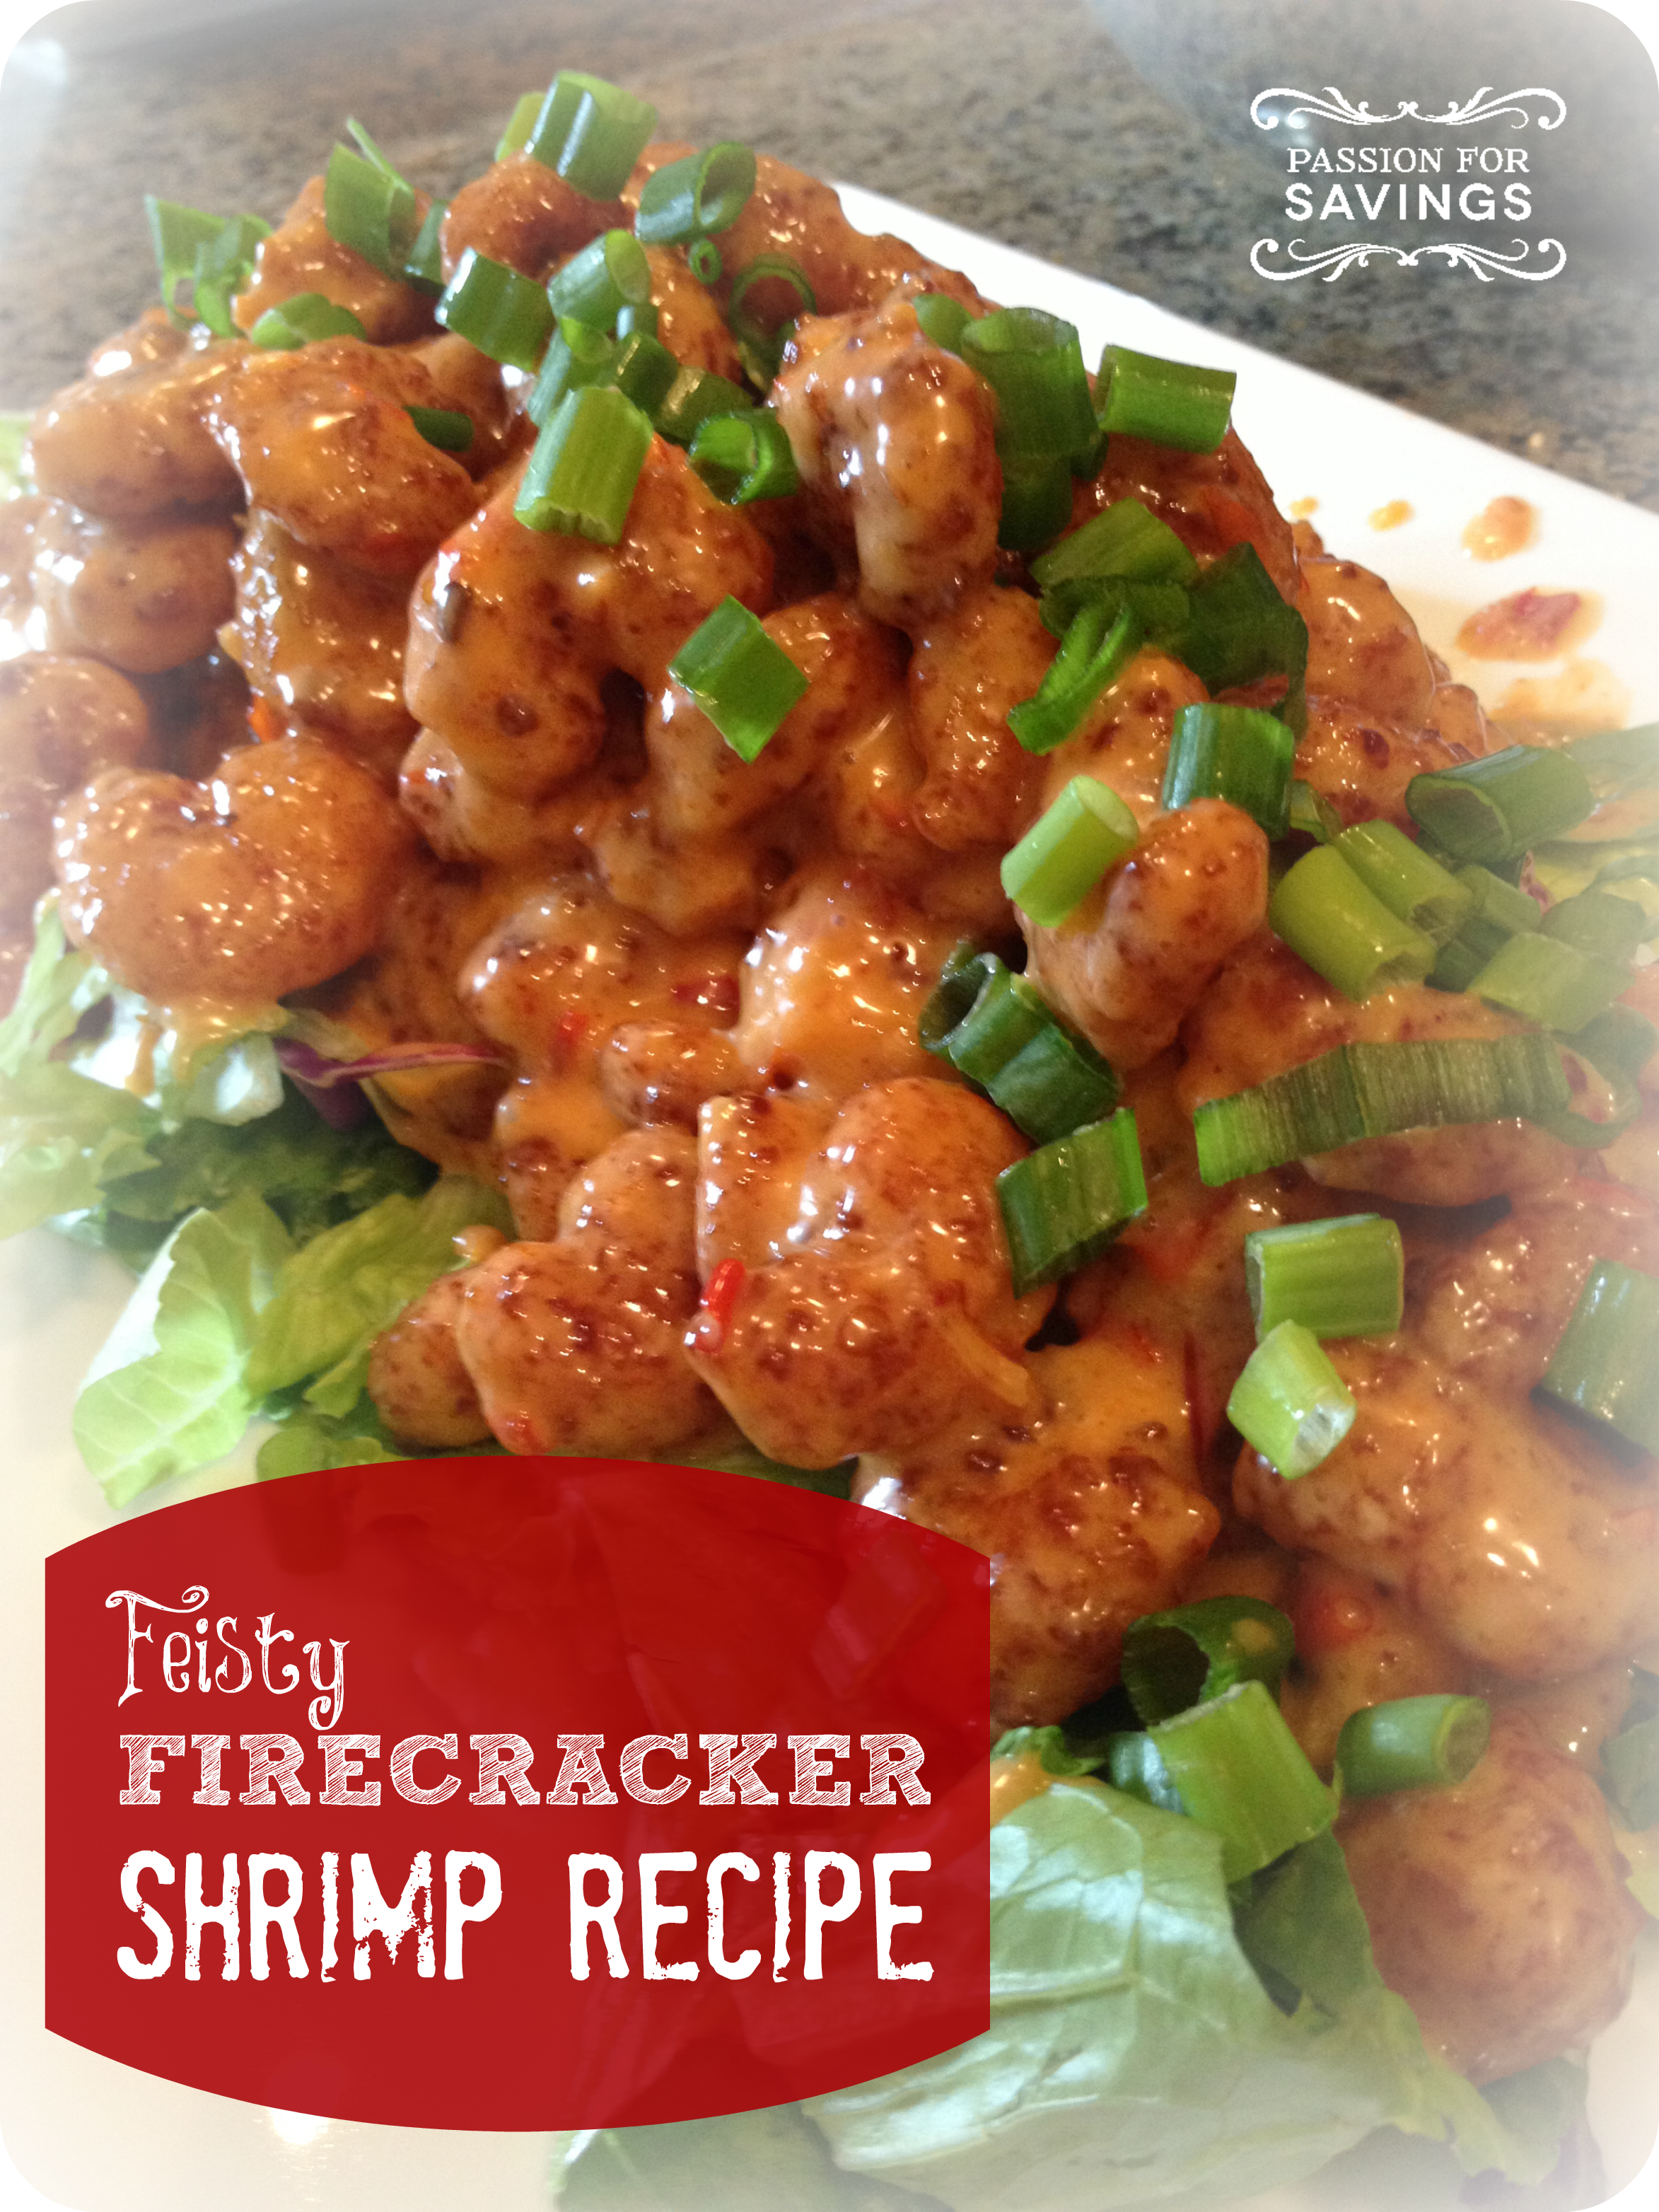 To Make This Firecracker Shrimp Recipe As An Appetizer Even More Budget Friendly Take A Look At The Links Beside Some Of The Ingr Recipes Cooking Recipes Food